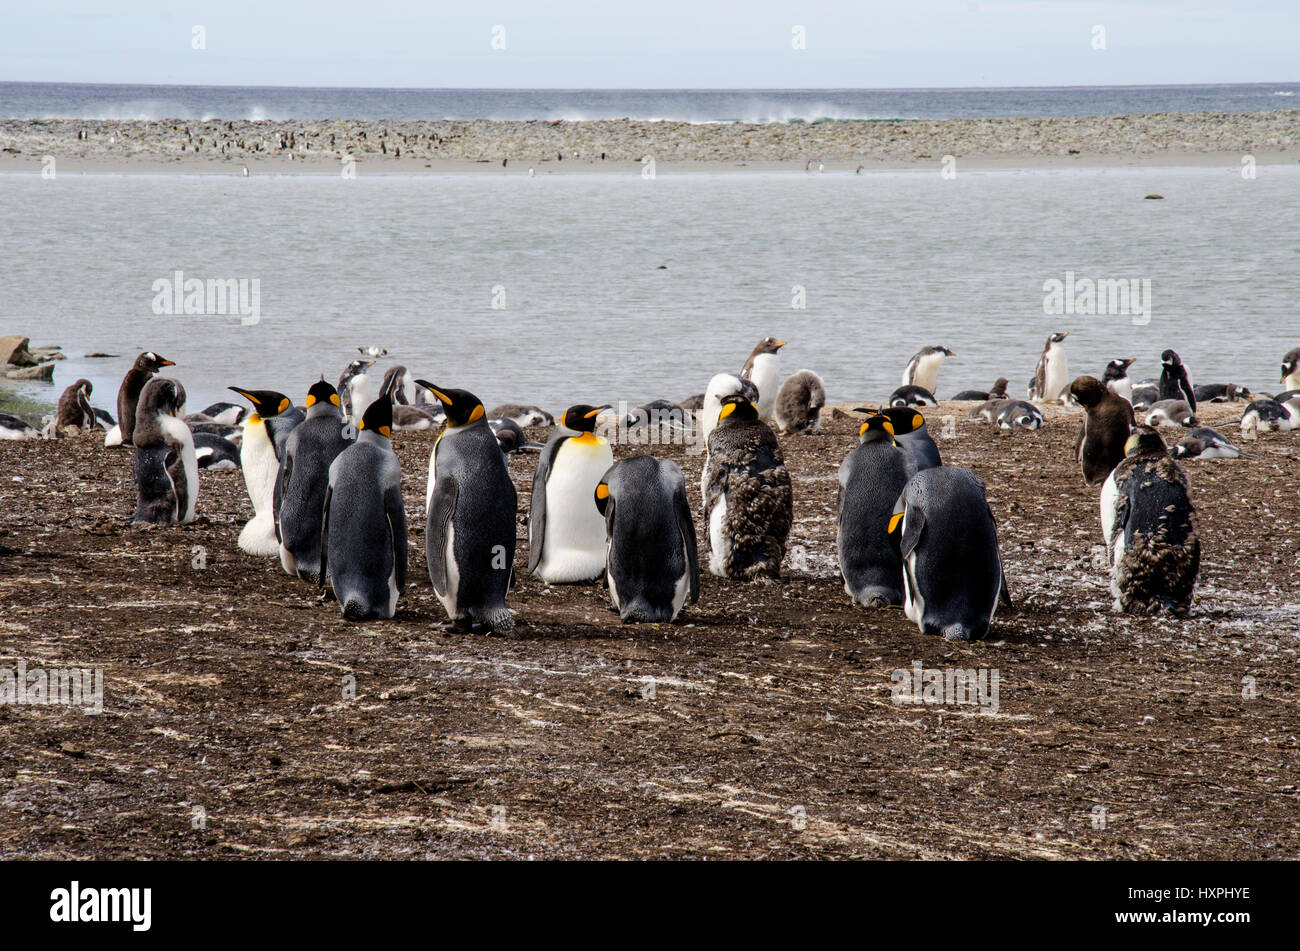 King Penguin - Aptenodytes patagonicus - Colony of king penguins in Falkland Islands - Stock Image